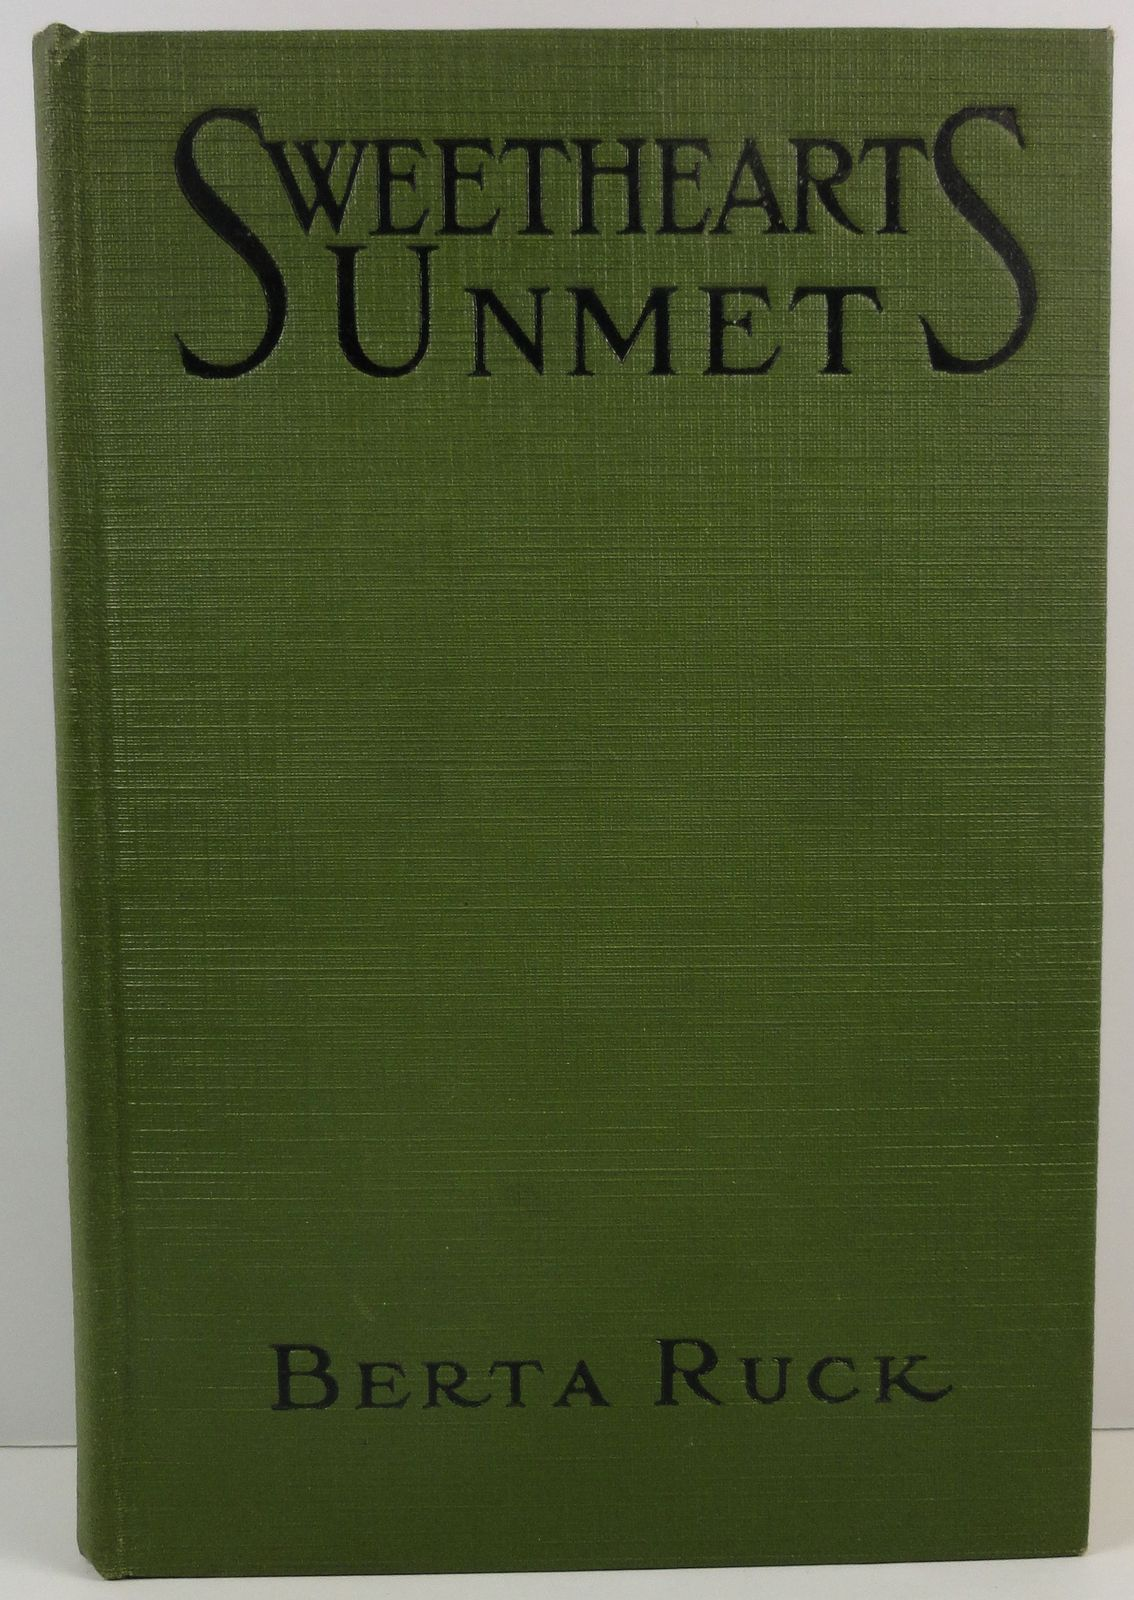 Primary image for Sweethearts Unmet by Berta Ruck 1919 Dodd Mead Caswell Illus